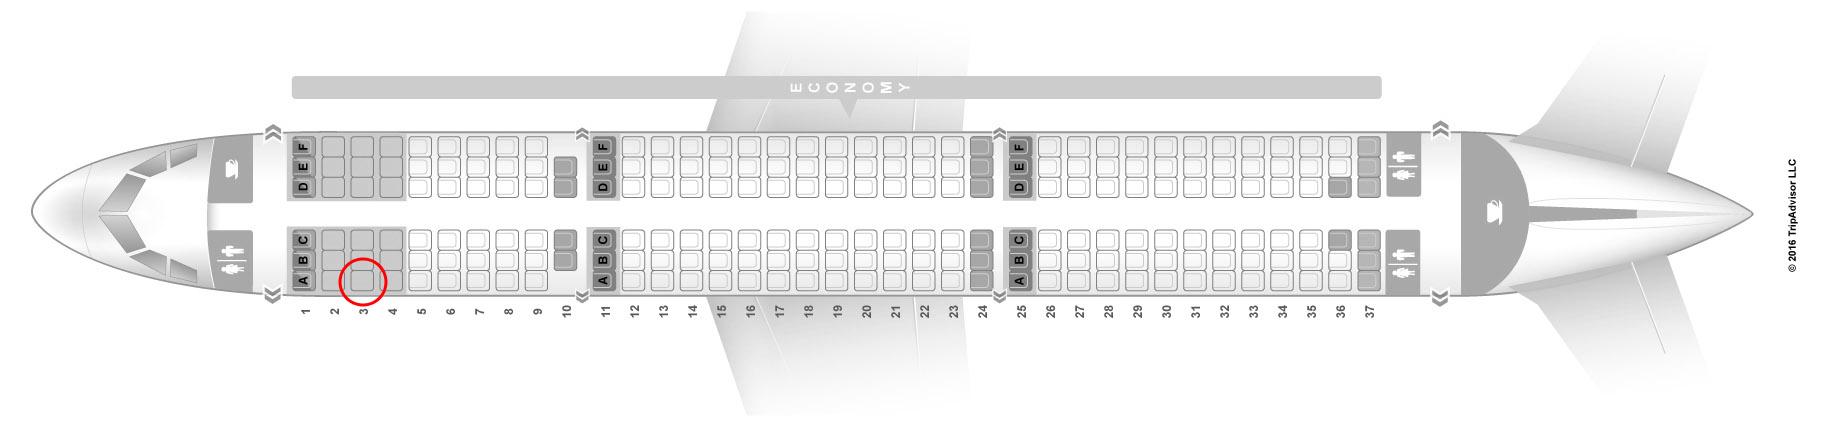 Volaris a321 seat map